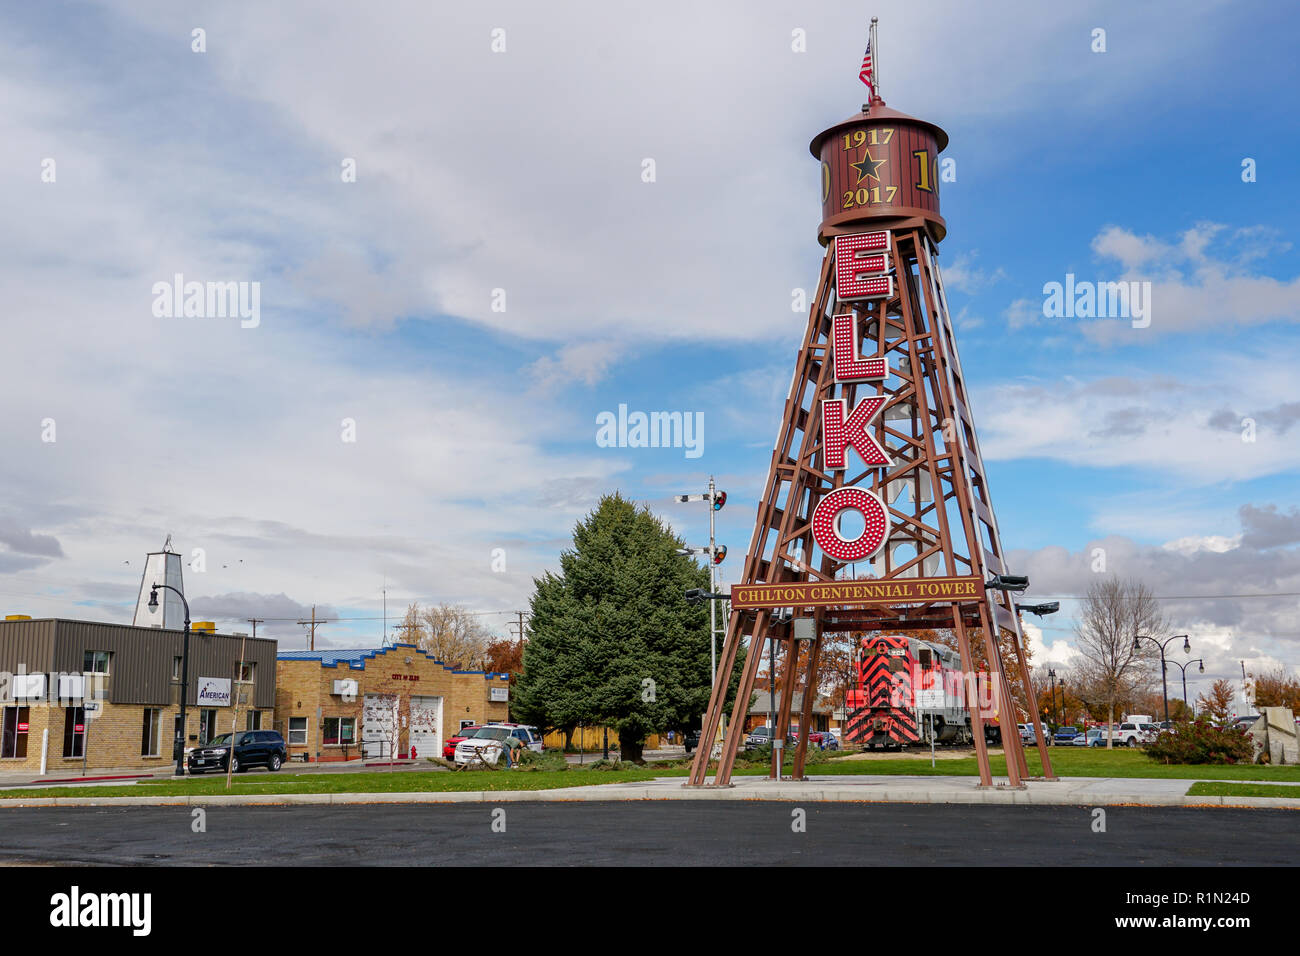 View of the Chilton Centennial Tower in downtown Elko, Nevada. - Stock Image